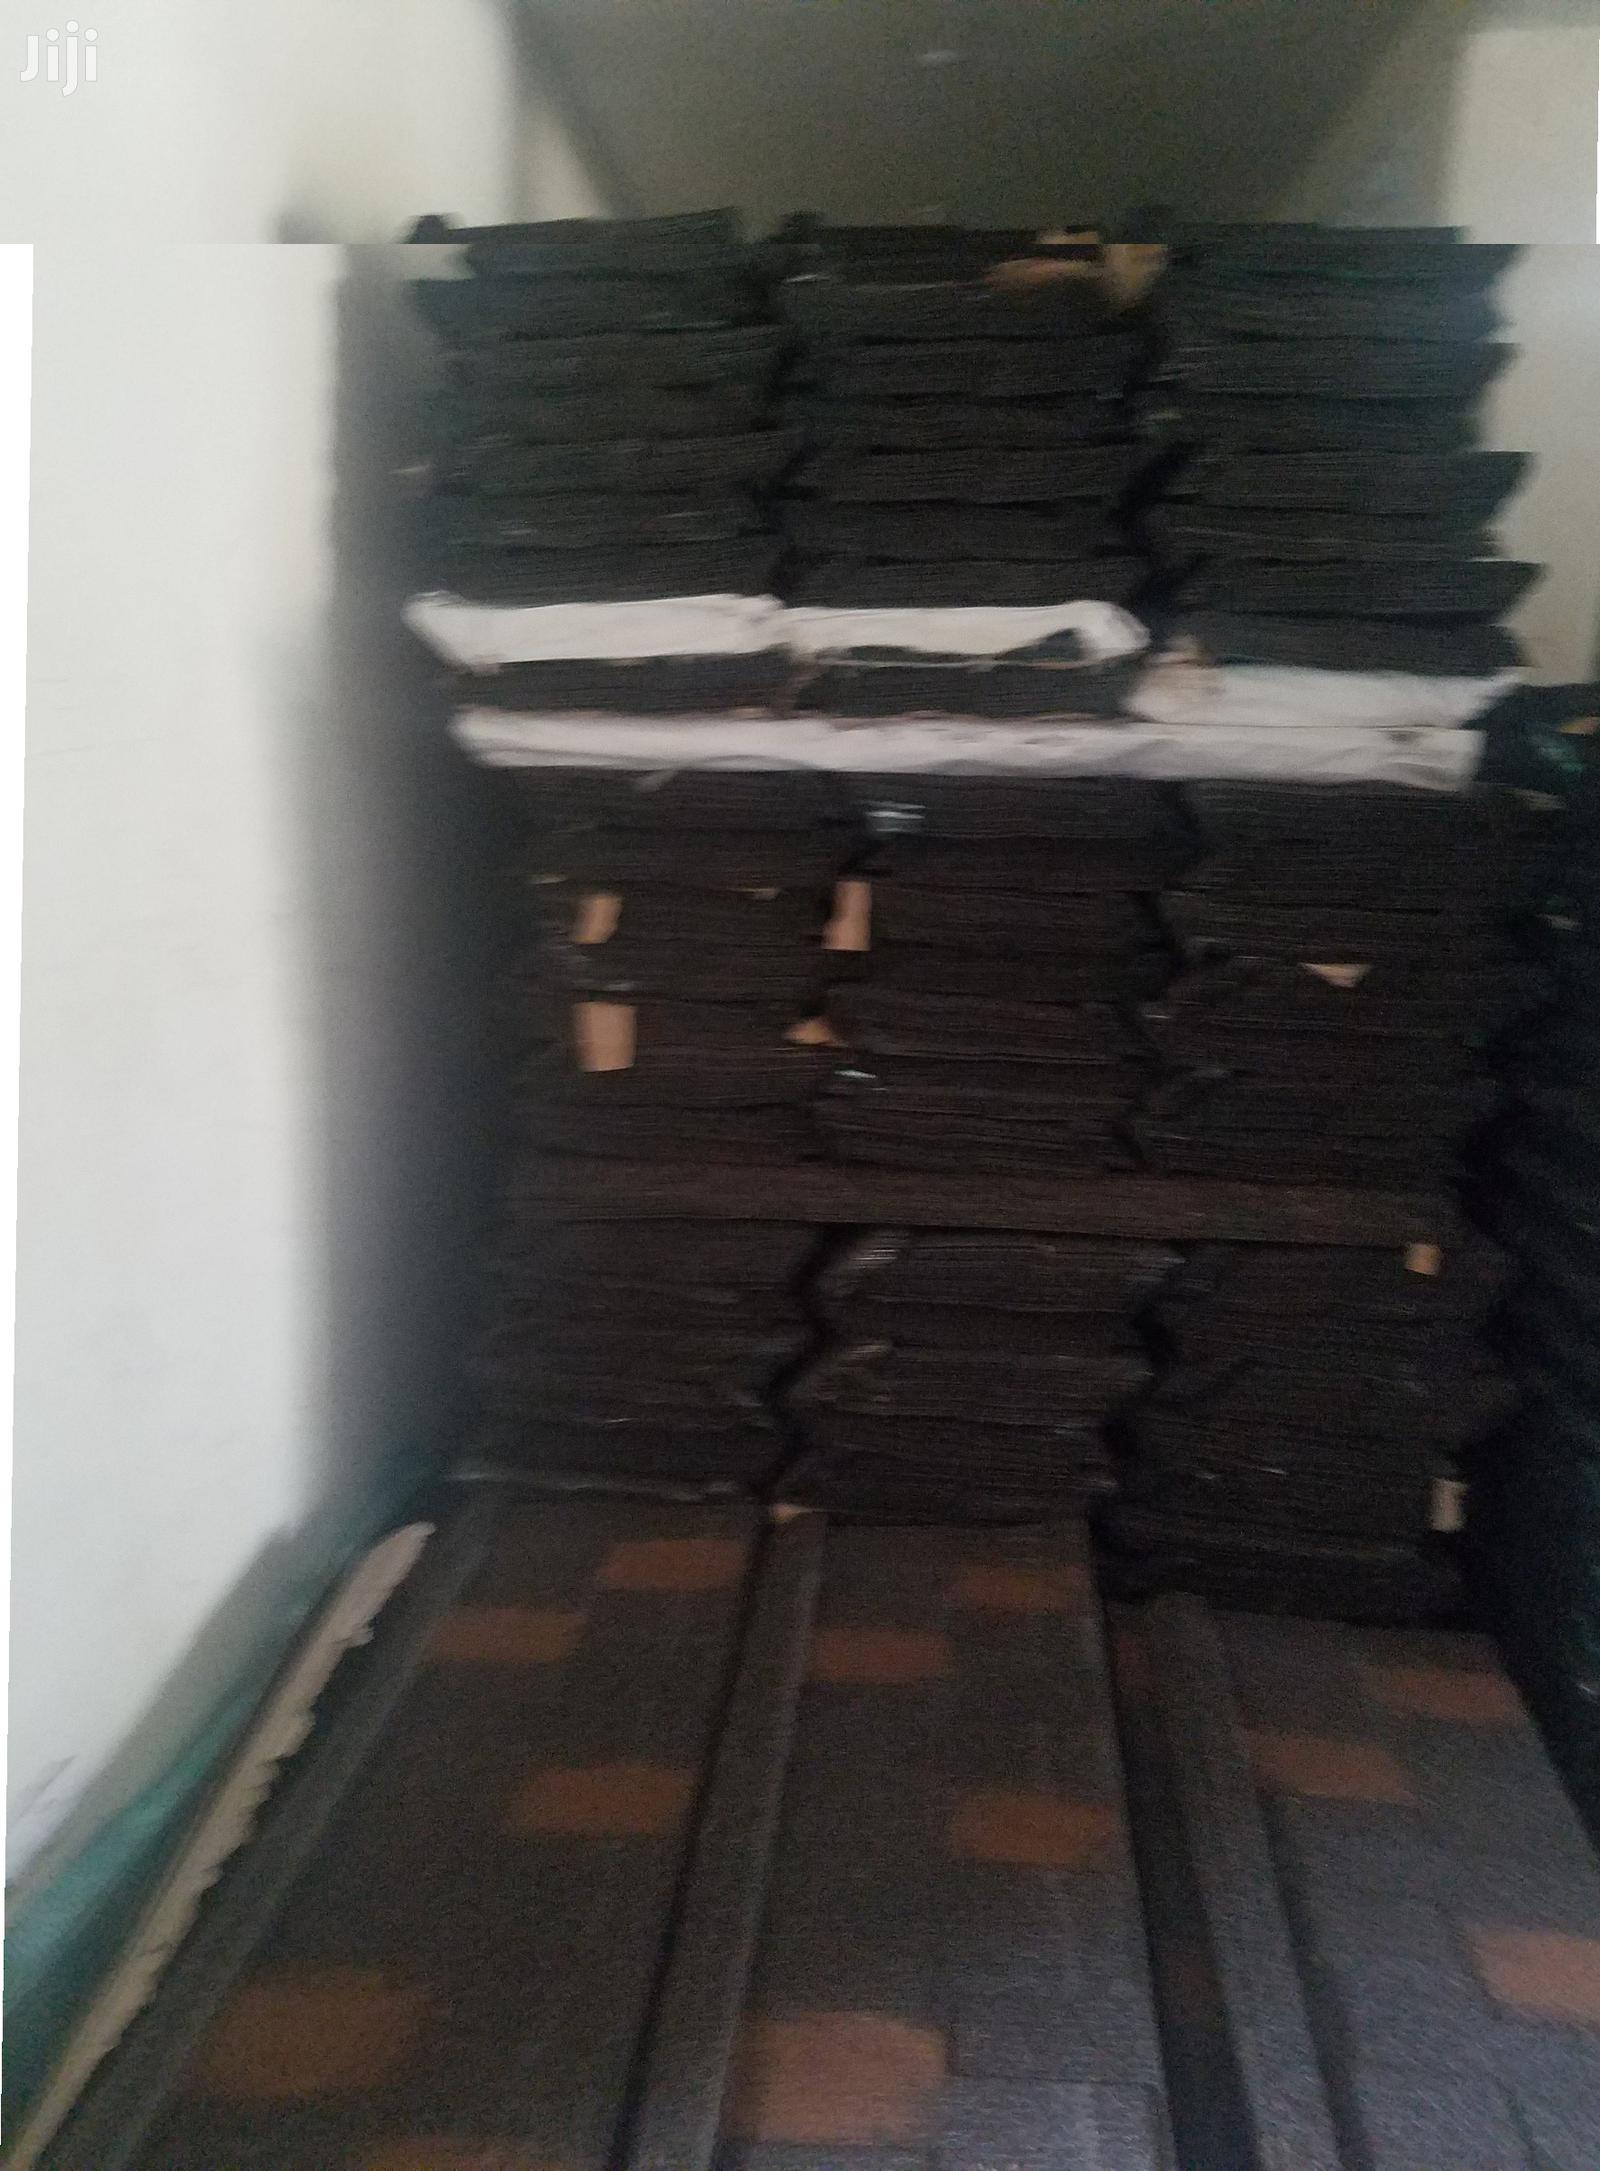 Docherich Nigltd High Grade Stone Coated Roof Tiles   Building Materials for sale in Ikoyi, Lagos State, Nigeria